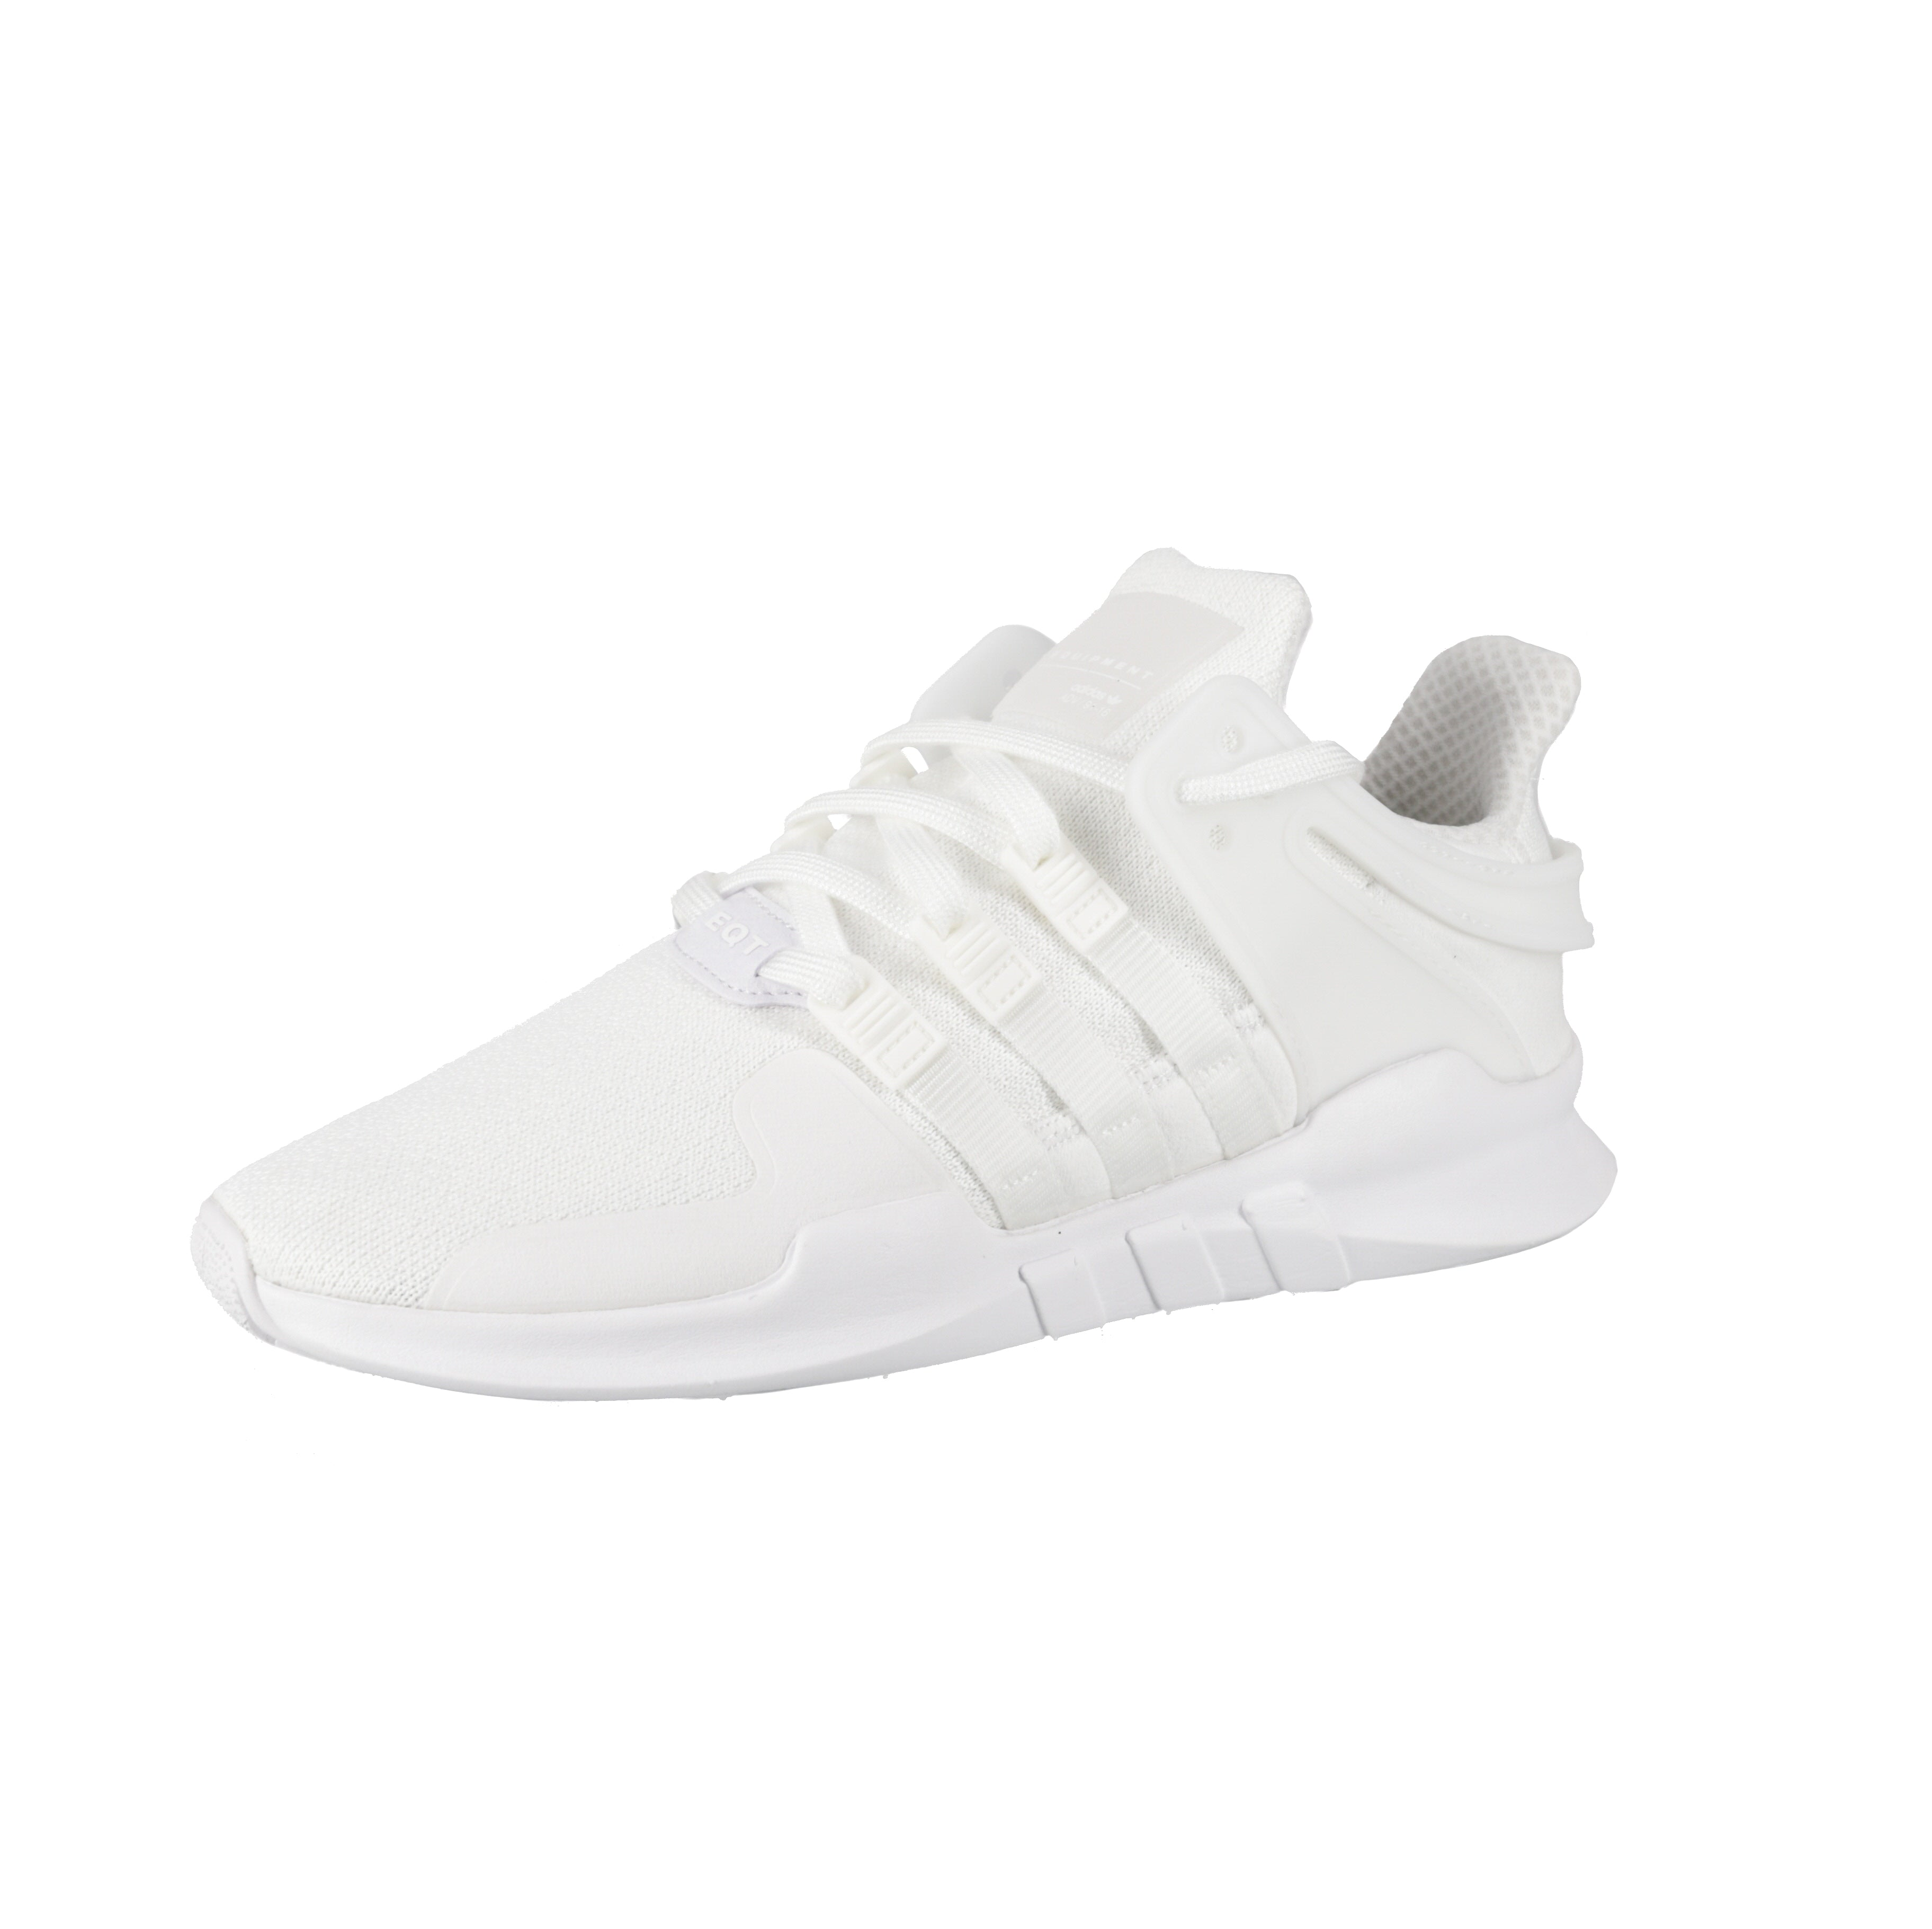 Kids adidas EQT Support ADV Shoes White Chicago City Sports